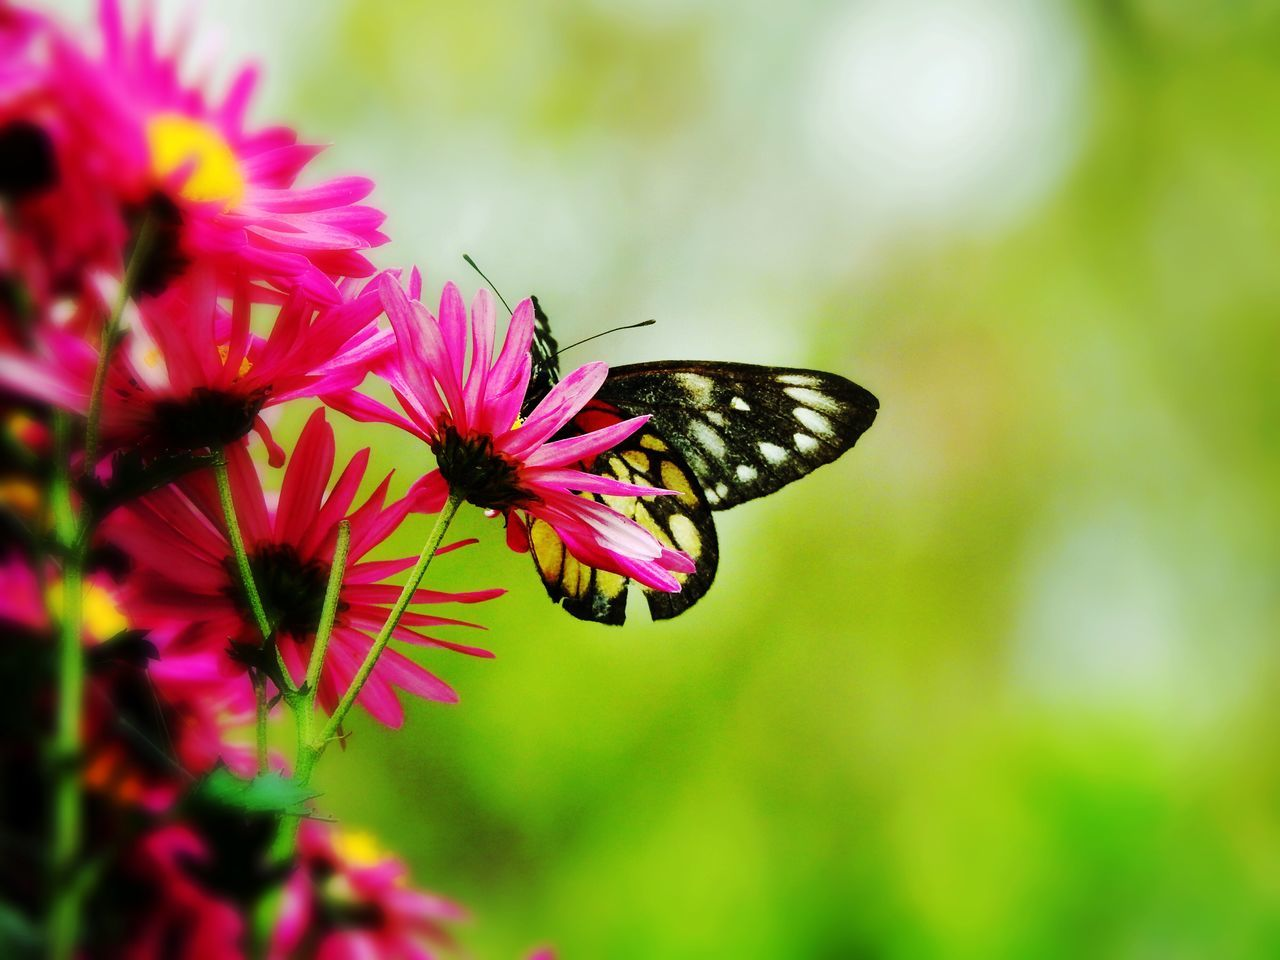 Flower Fragility Insect Nature Beauty In Nature One Animal Plant Freshness Animal Themes (null) Close-up Focus On Foreground Growth Animals In The Wild Outdoors Flower Head Butterfly - Insect No People Day Pollination